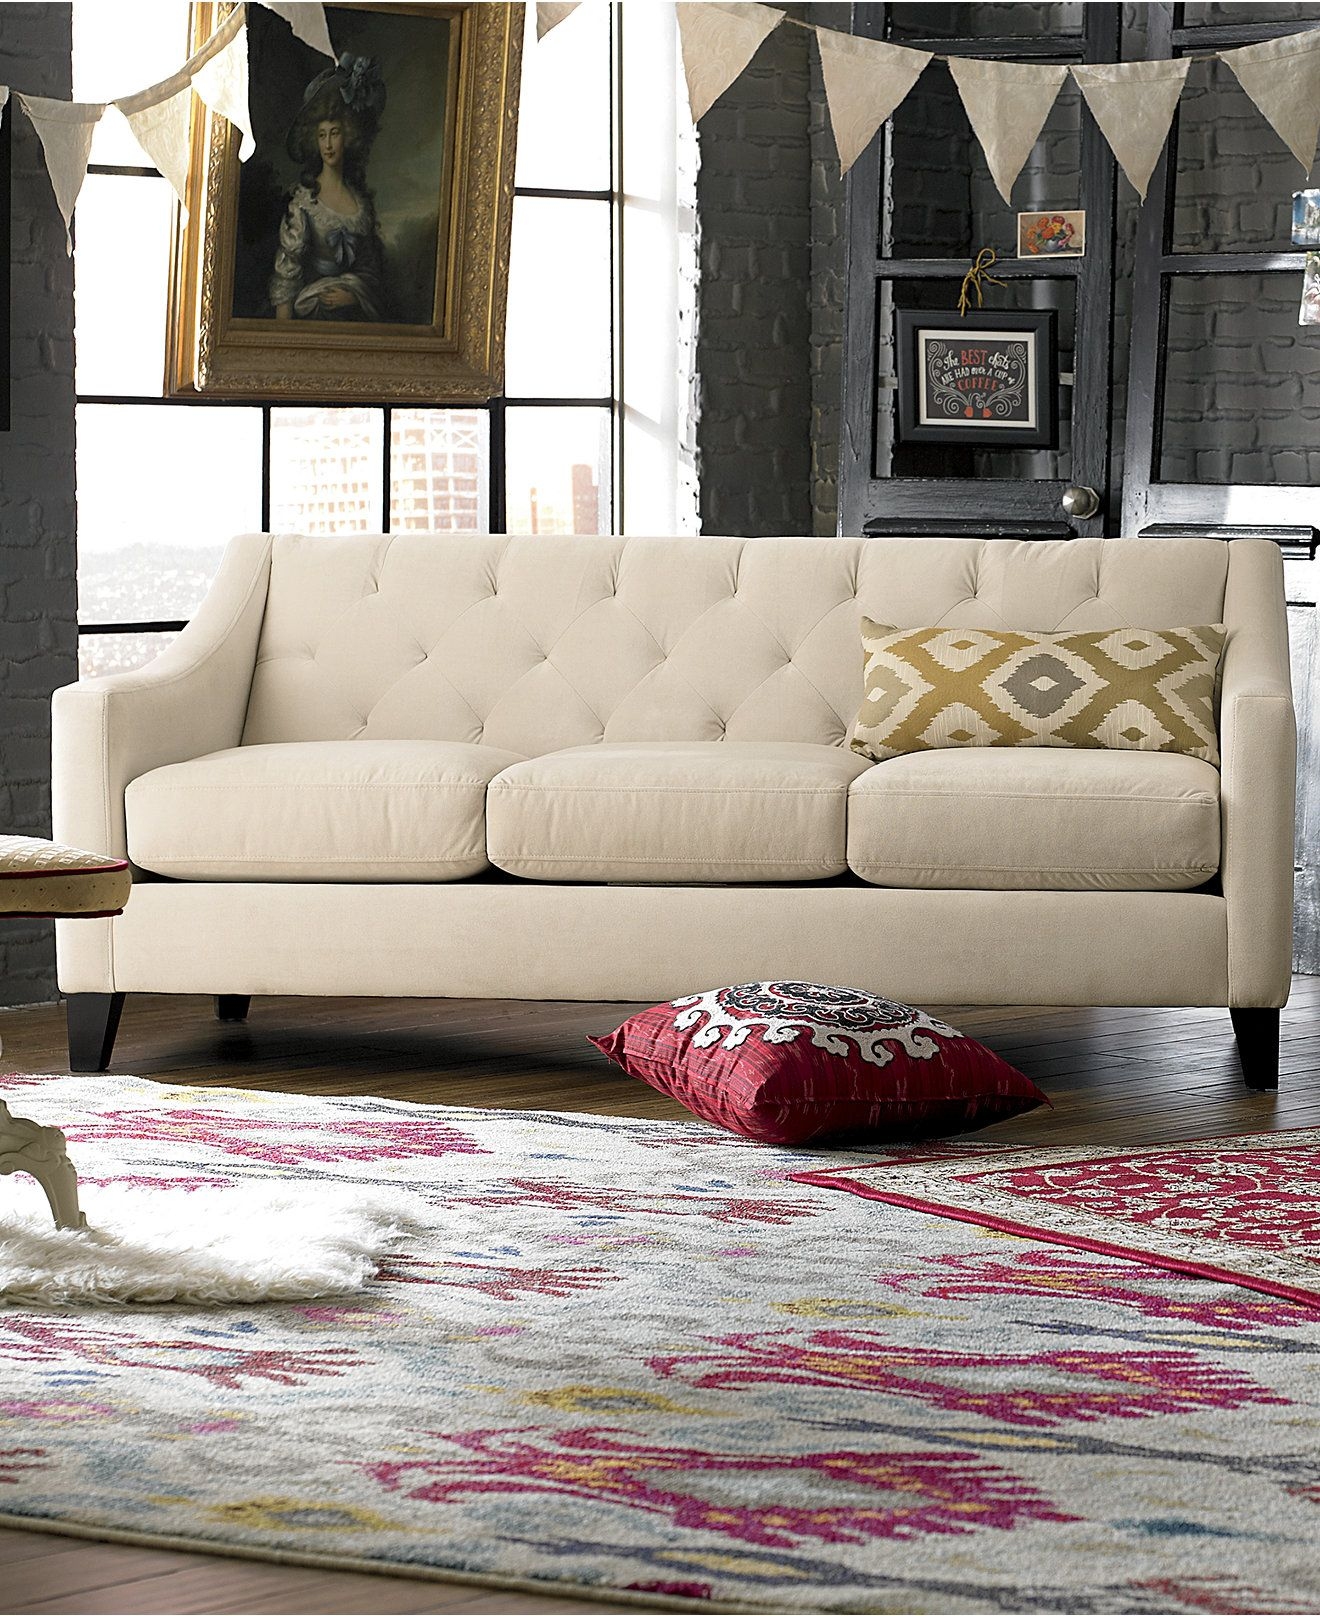 Chloe Velvet Tufted Sofa Living Room Furniture Collection   Apartment  Living   For The Home   Macy s. Chloe Velvet Tufted Sofa Living Room Furniture Collection   Custom